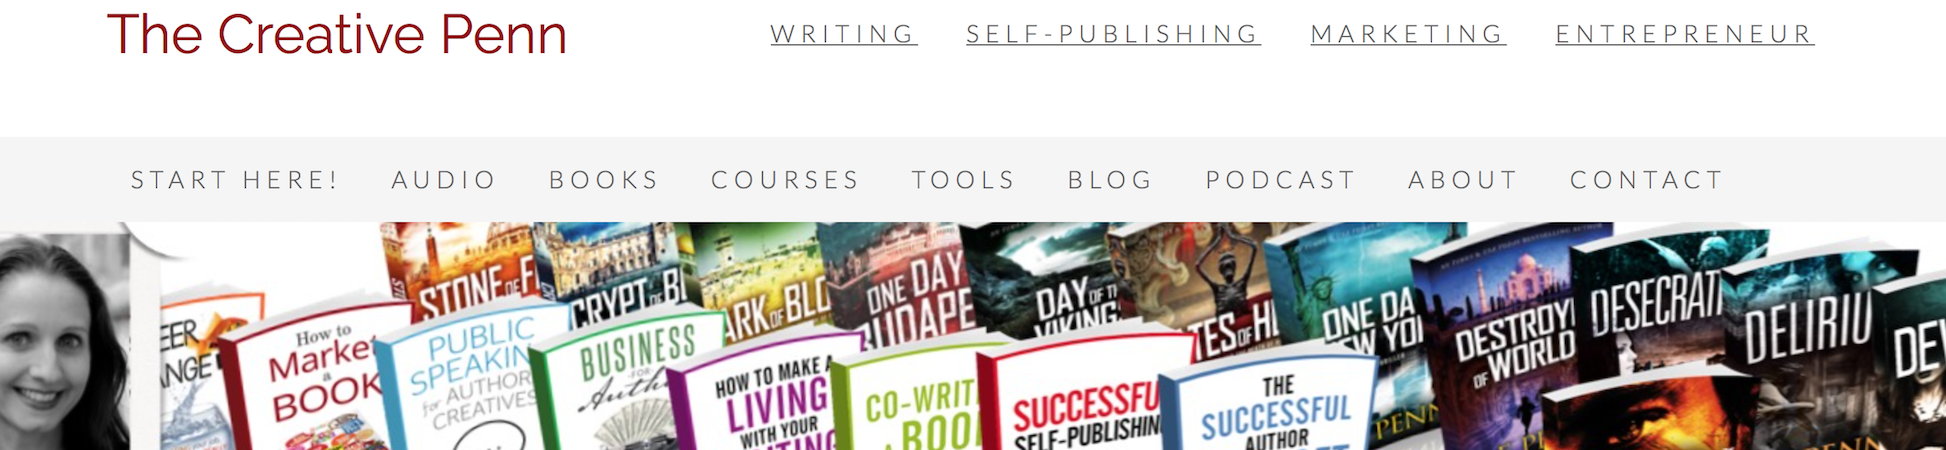 self-publishing blog